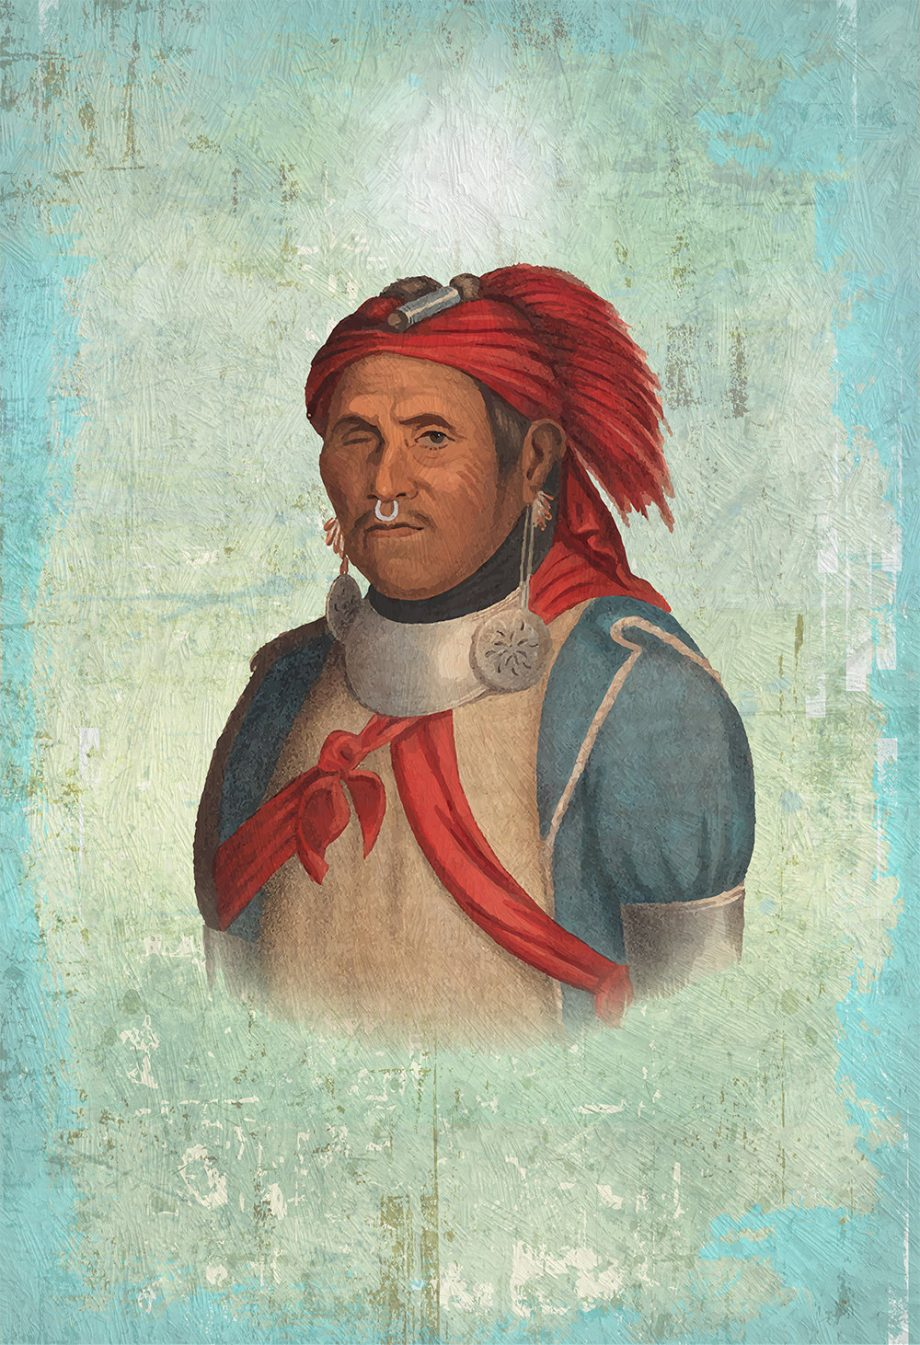 Vintage Native American Man The Prophet Illustration Art Print Vintage Giclee on Cotton Canvas or Paper Canvas Poster Wall Decor